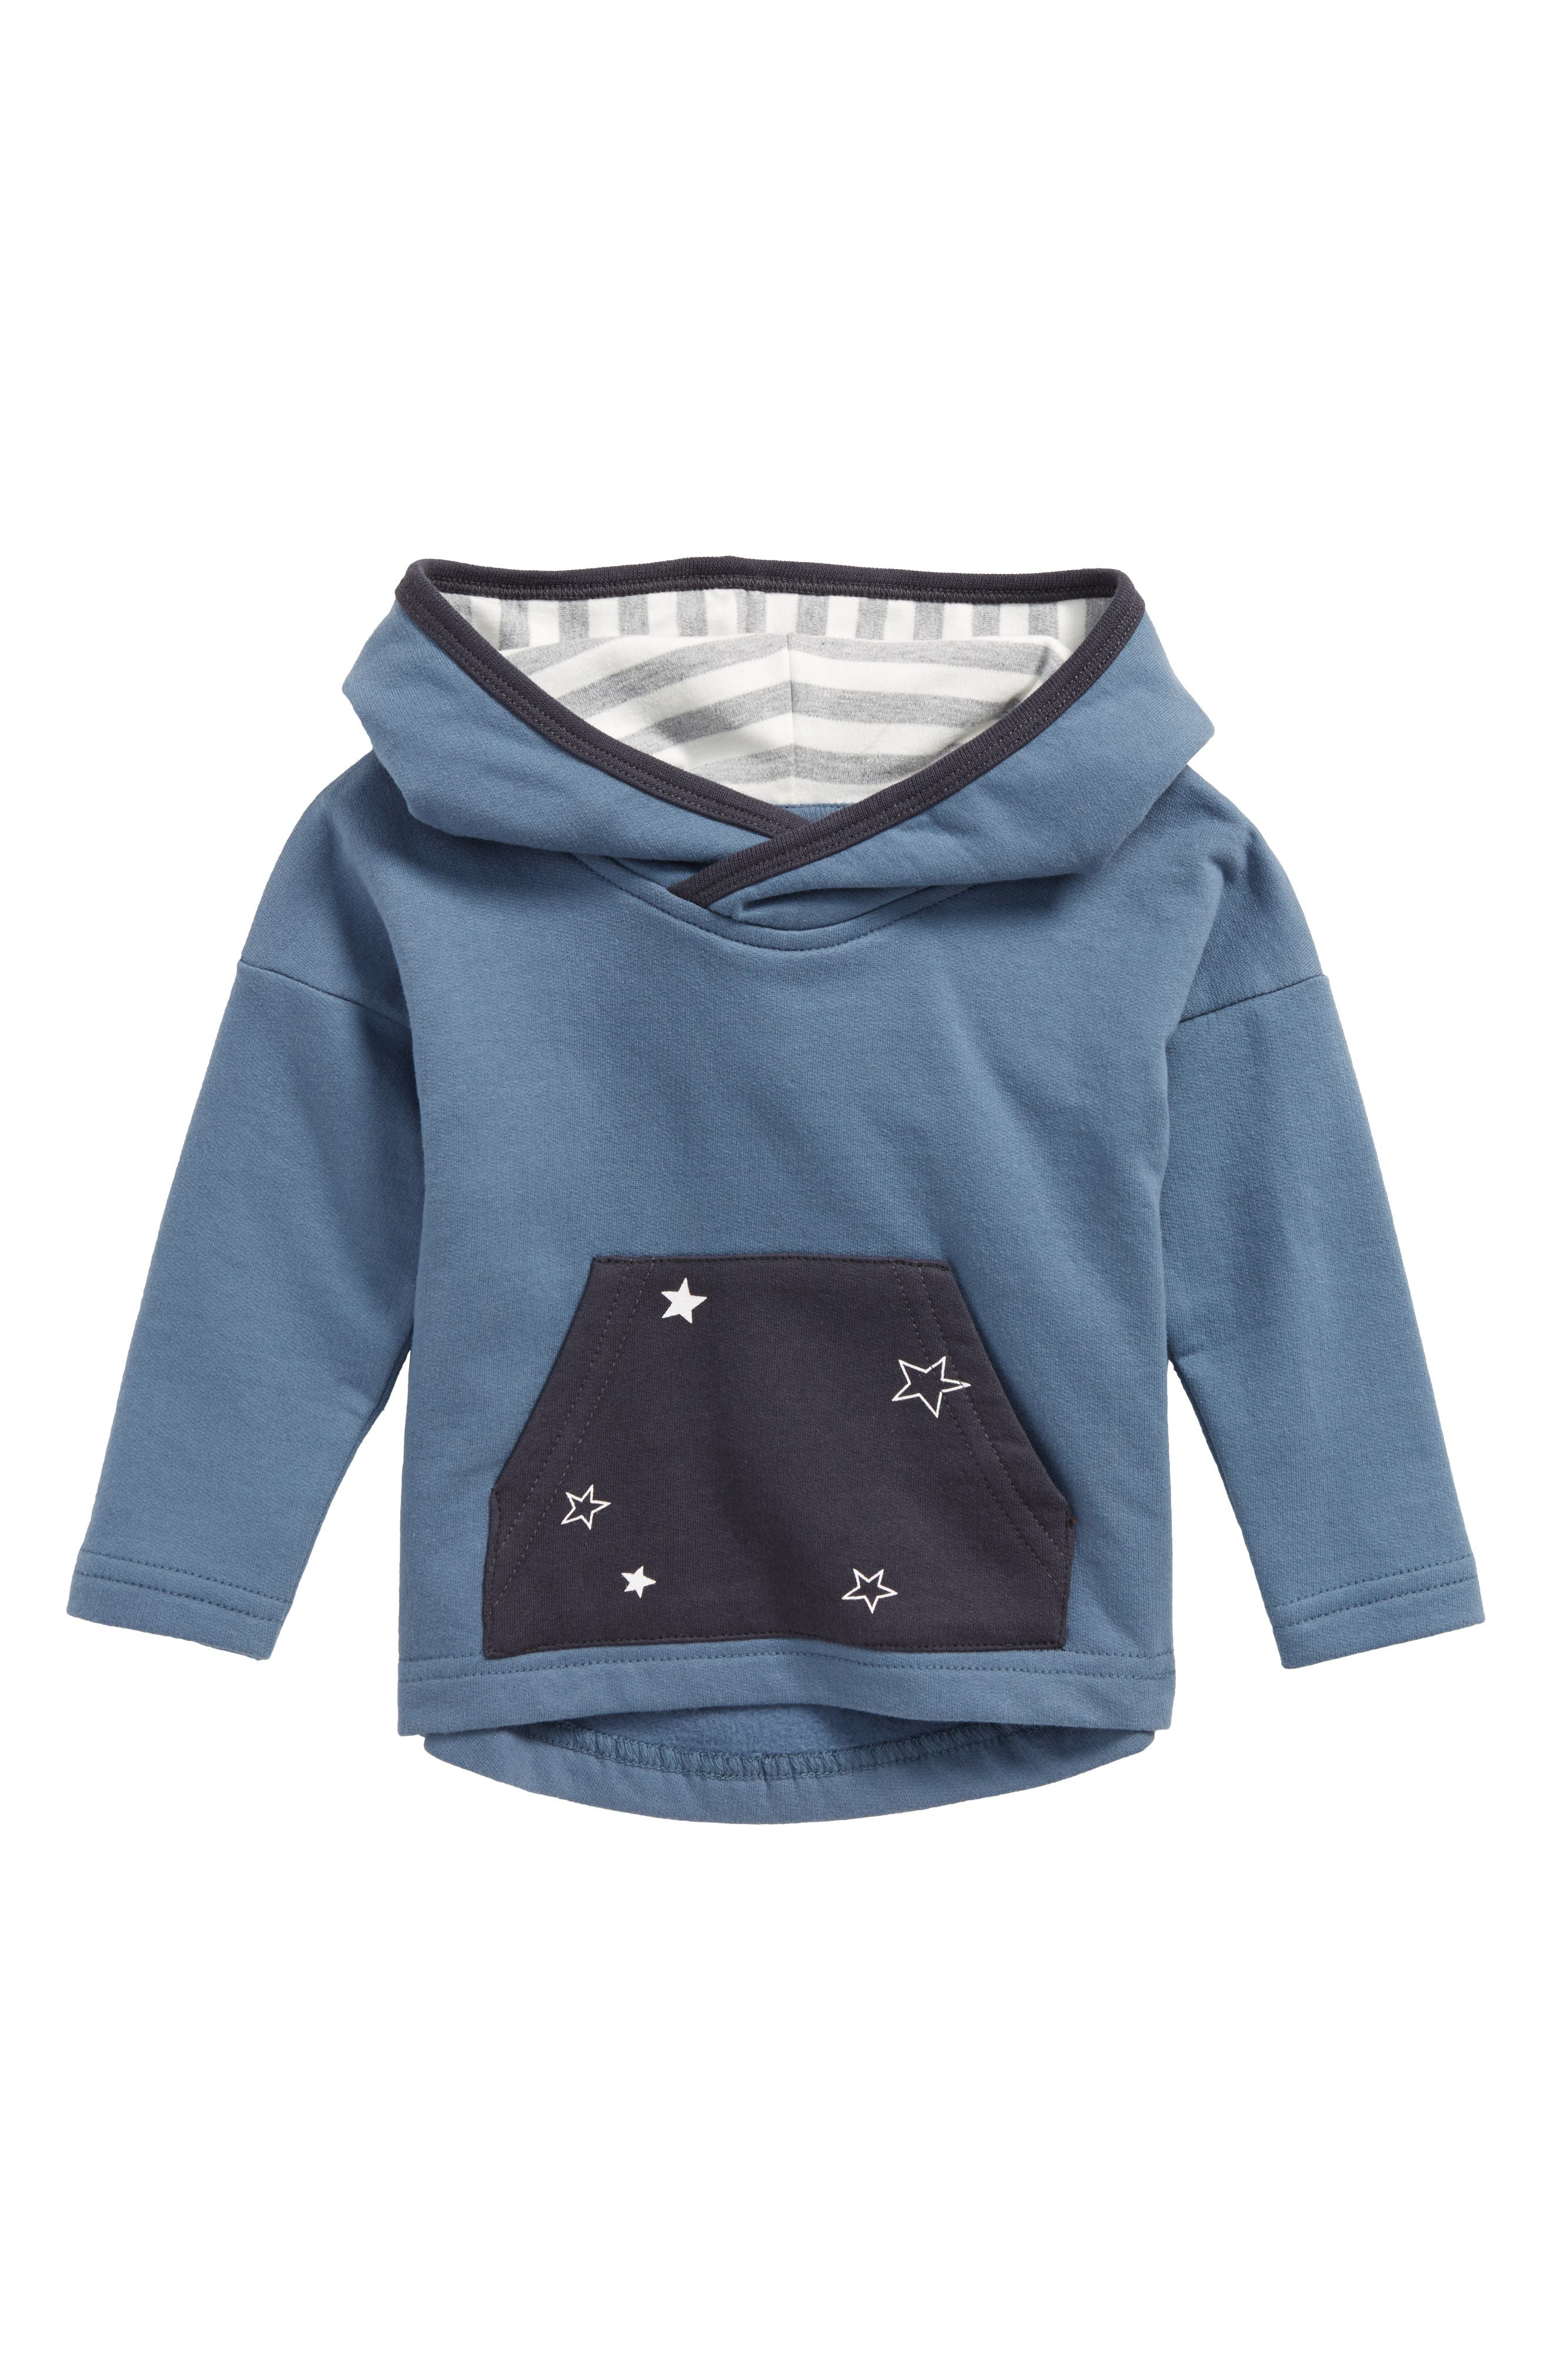 Alternate Image 1 Selected - City Mouse Star Pocket Hoodie (Baby Boys)